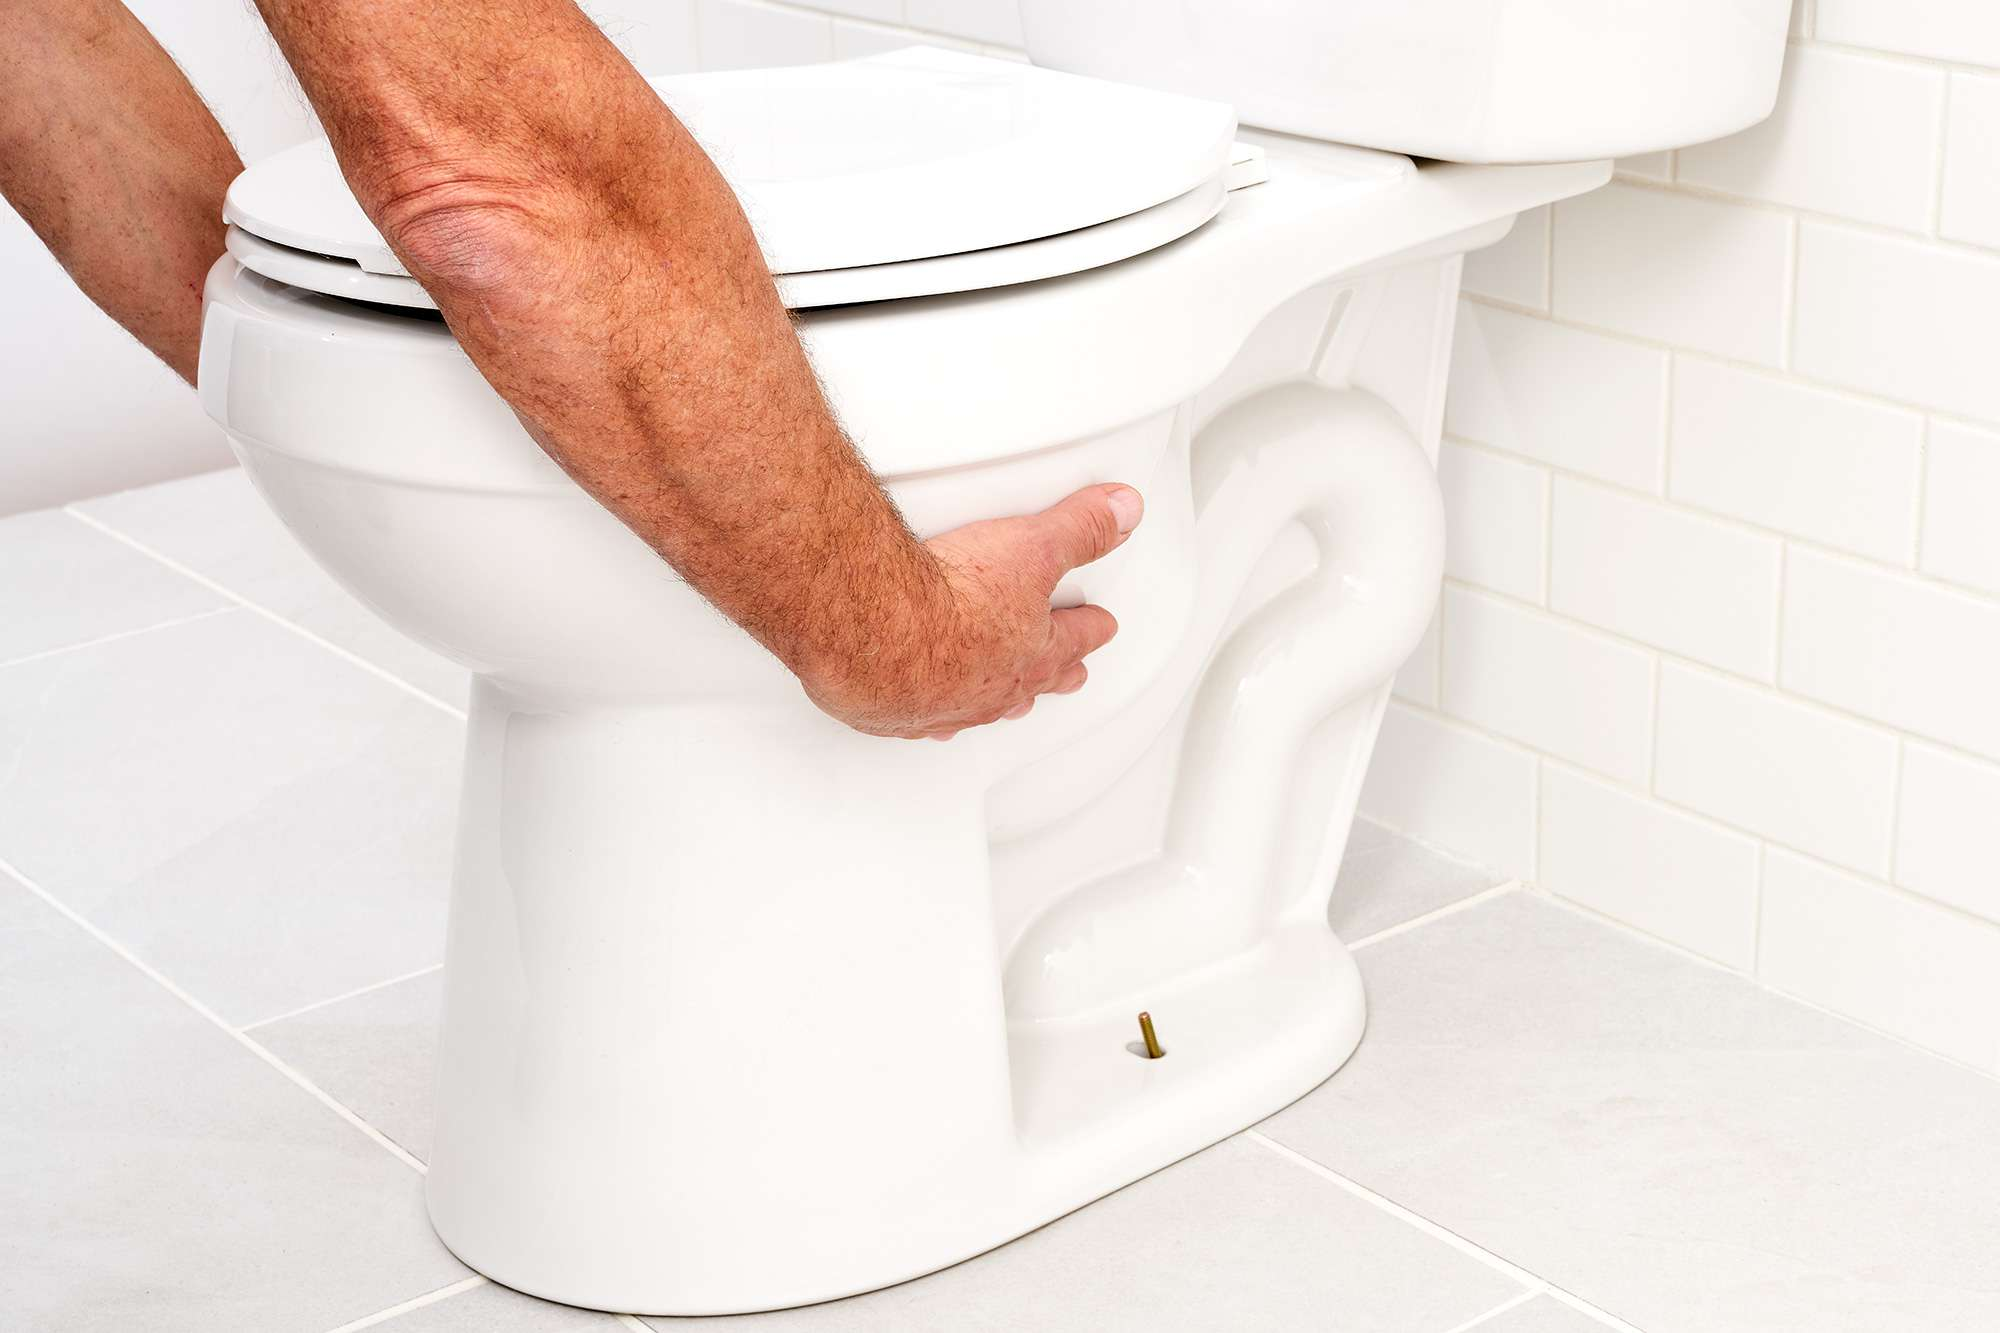 White toilet lifted by straddling toilet bowl on both sides